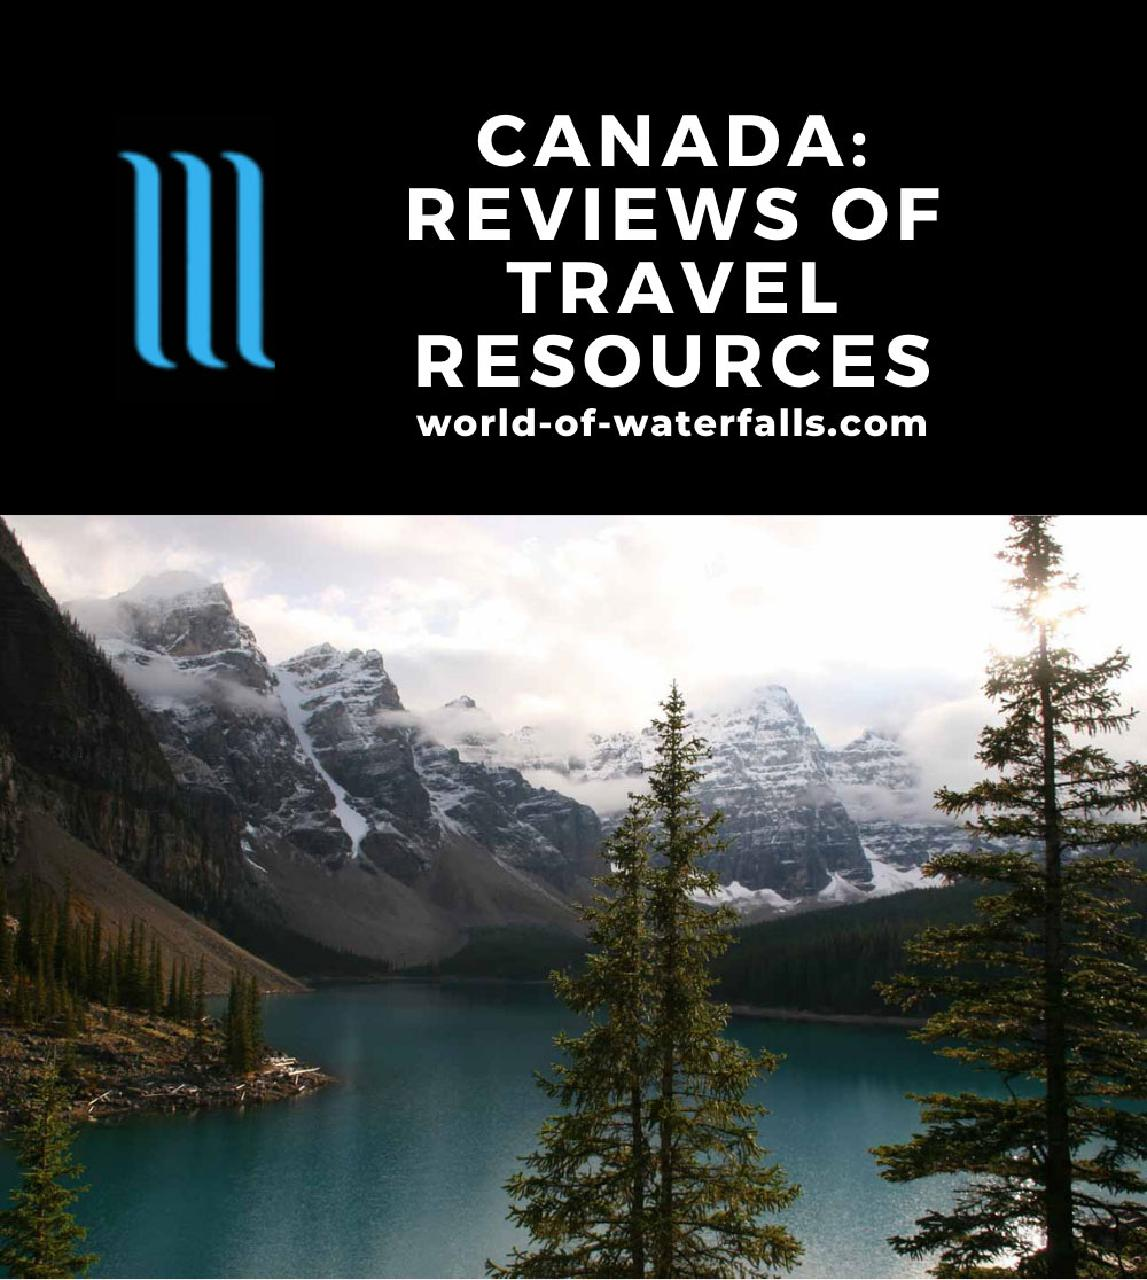 Canada: Reviews of Travel Resources